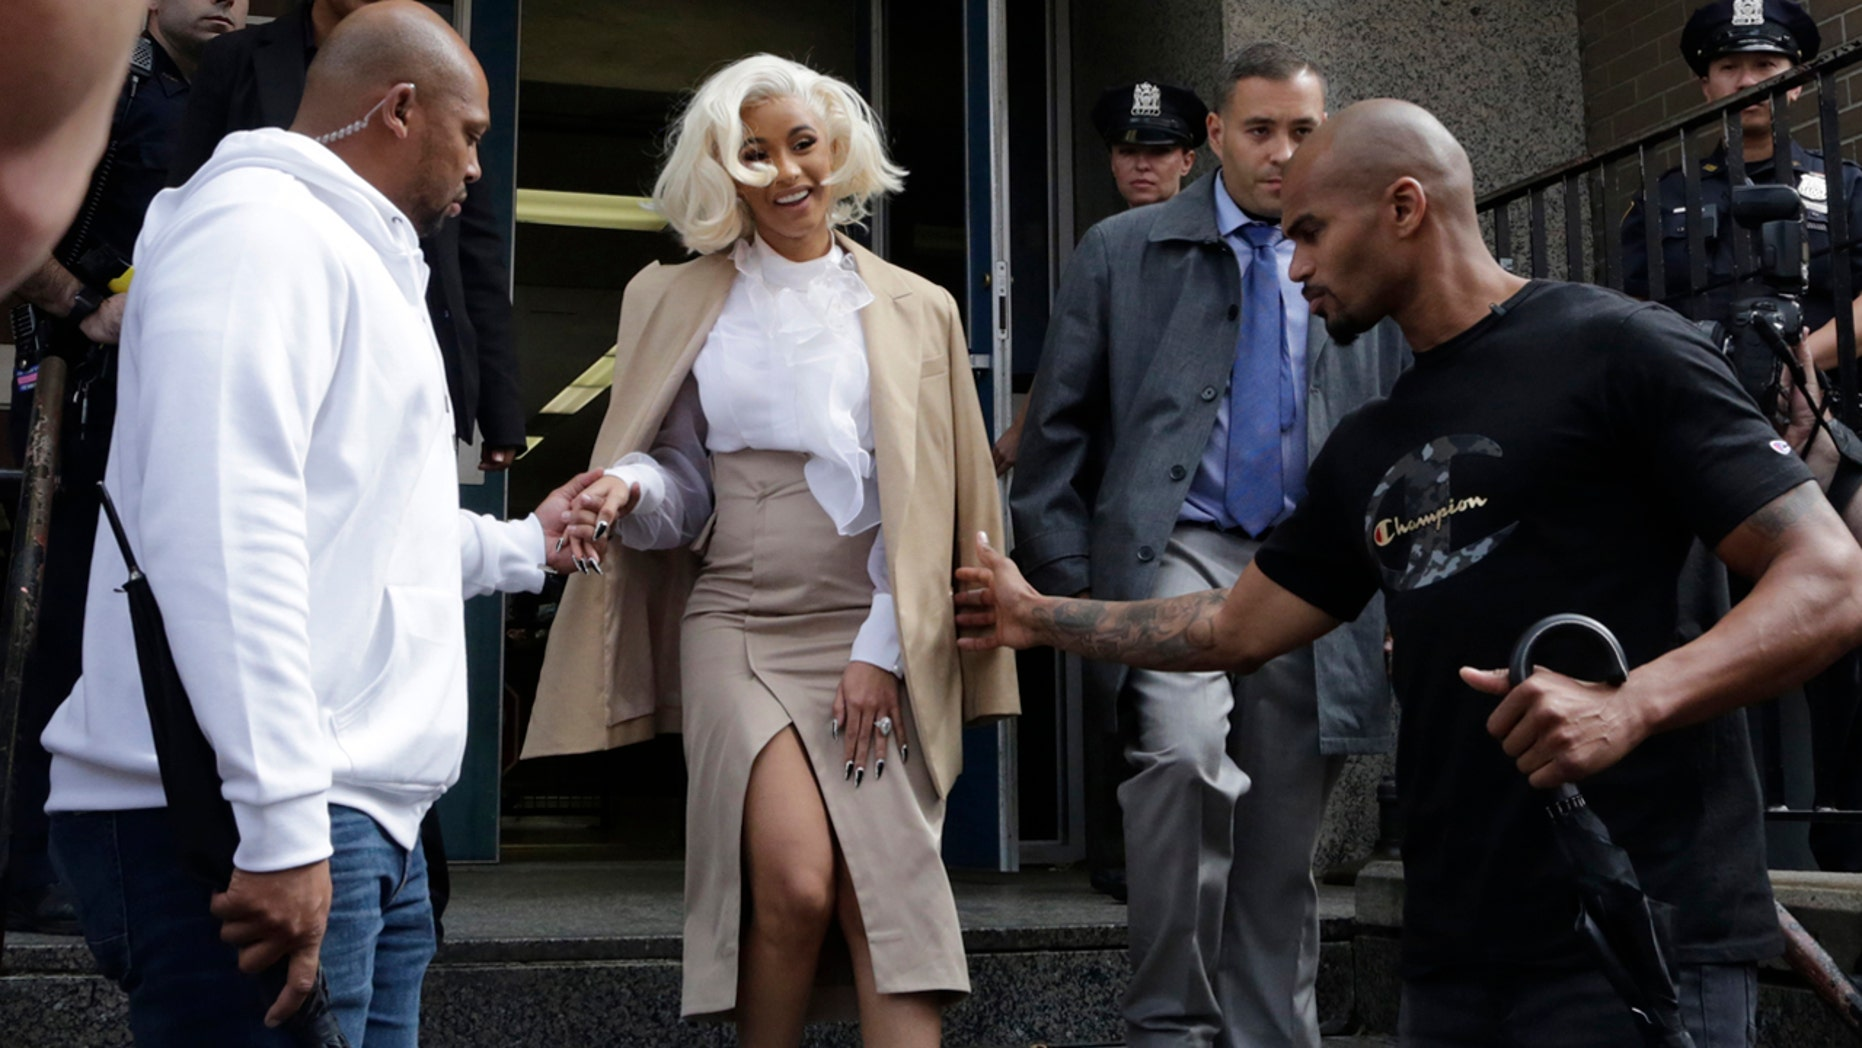 Rapper Cardi B is assisted by security guards as she leaves a police precinct Monday Oct. 1 2018 in the Queens borough of New York. The rapper met with police as part of an investigation of her possible involvement in a fight at a strip club